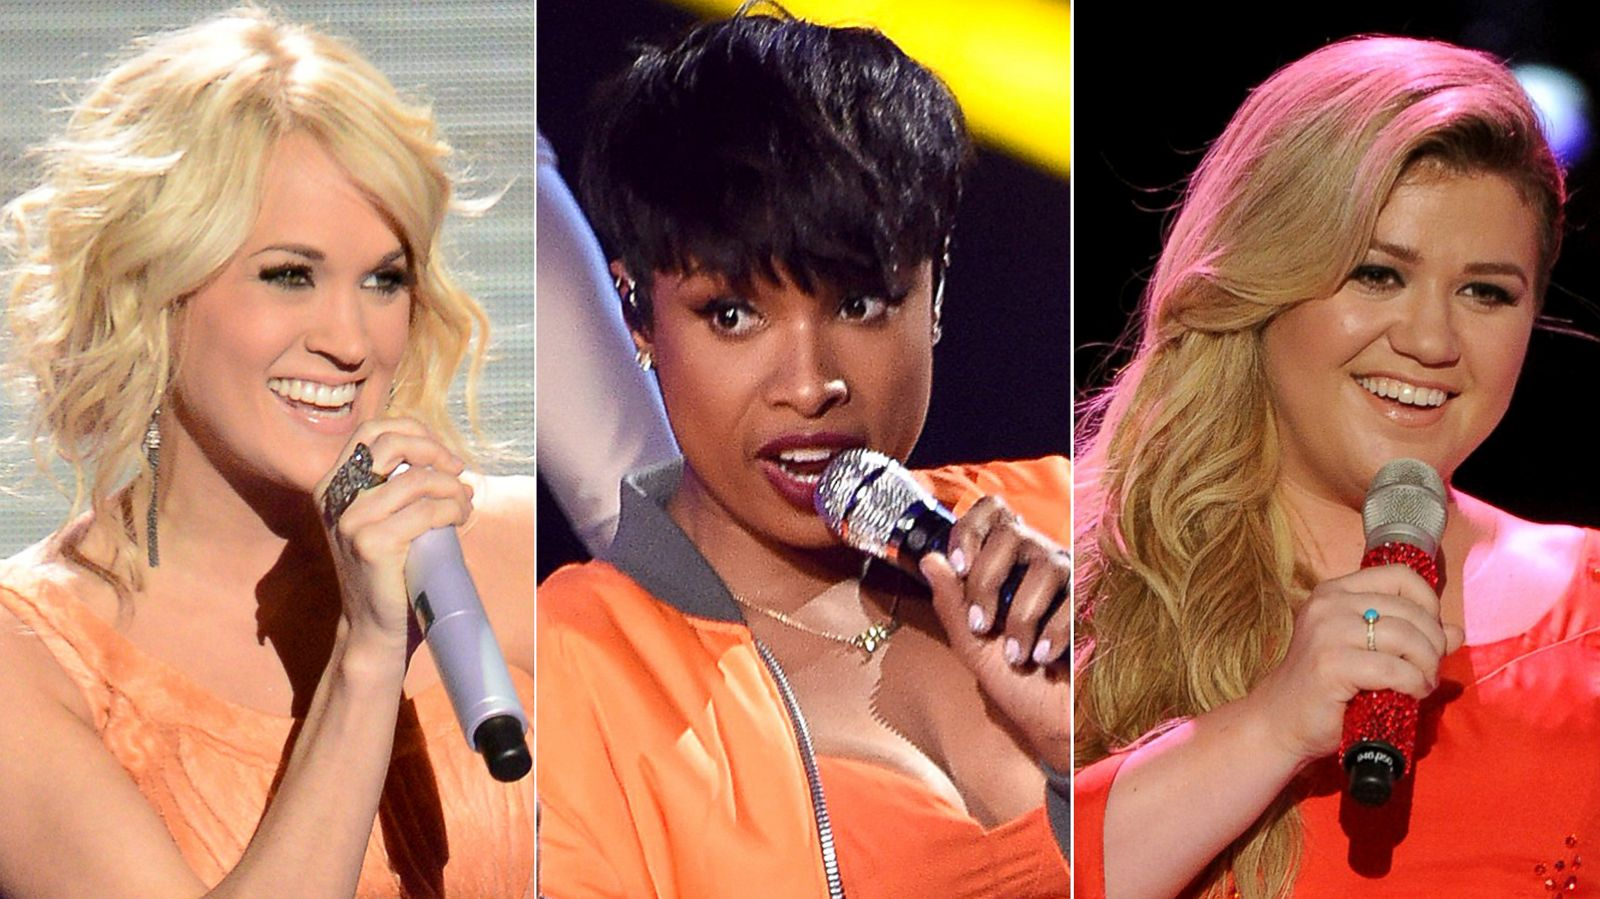 Top 10 Biggest Stars From American Idol As The Series Comes To